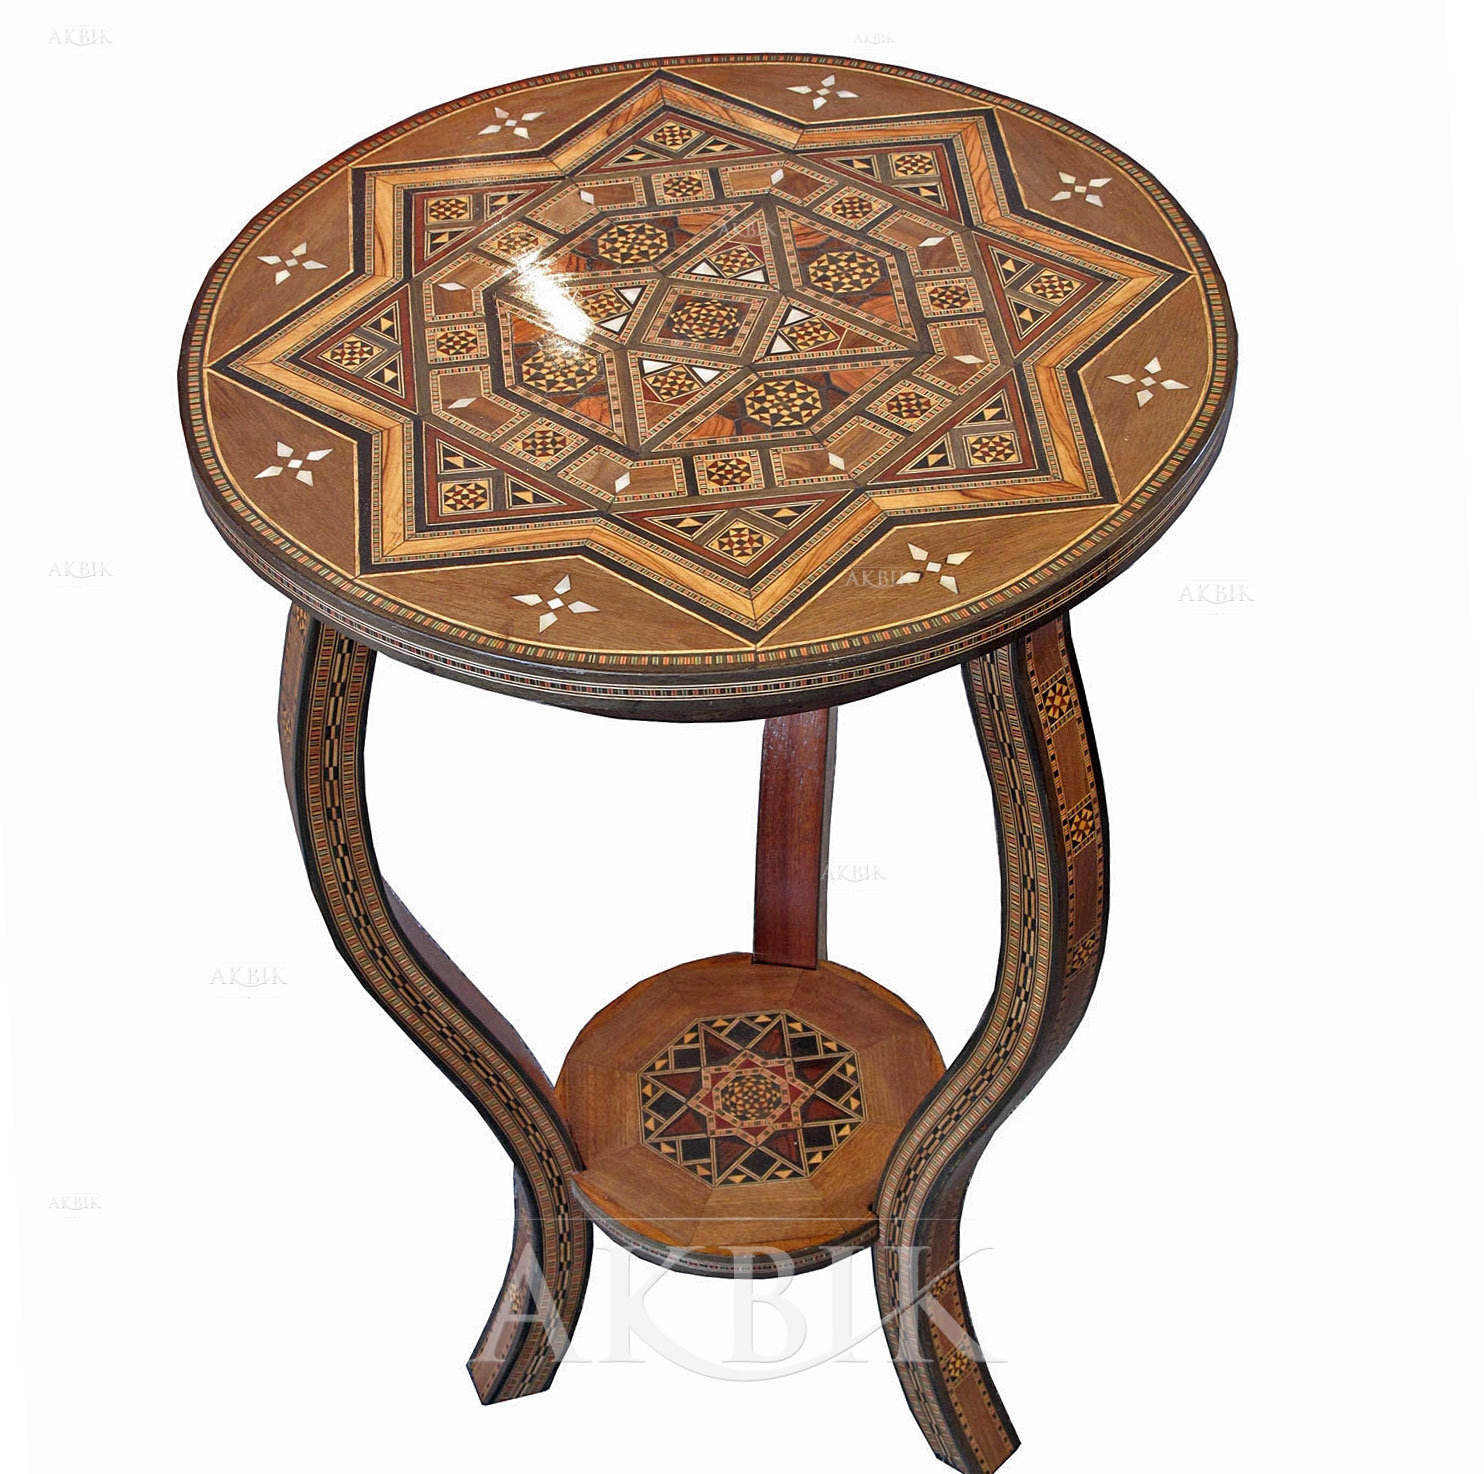 furniture impressive moroccan side table for bedroom pier one base camel bone end accent antique single drawer small glass top patio marble copper coffee height rain drum retro